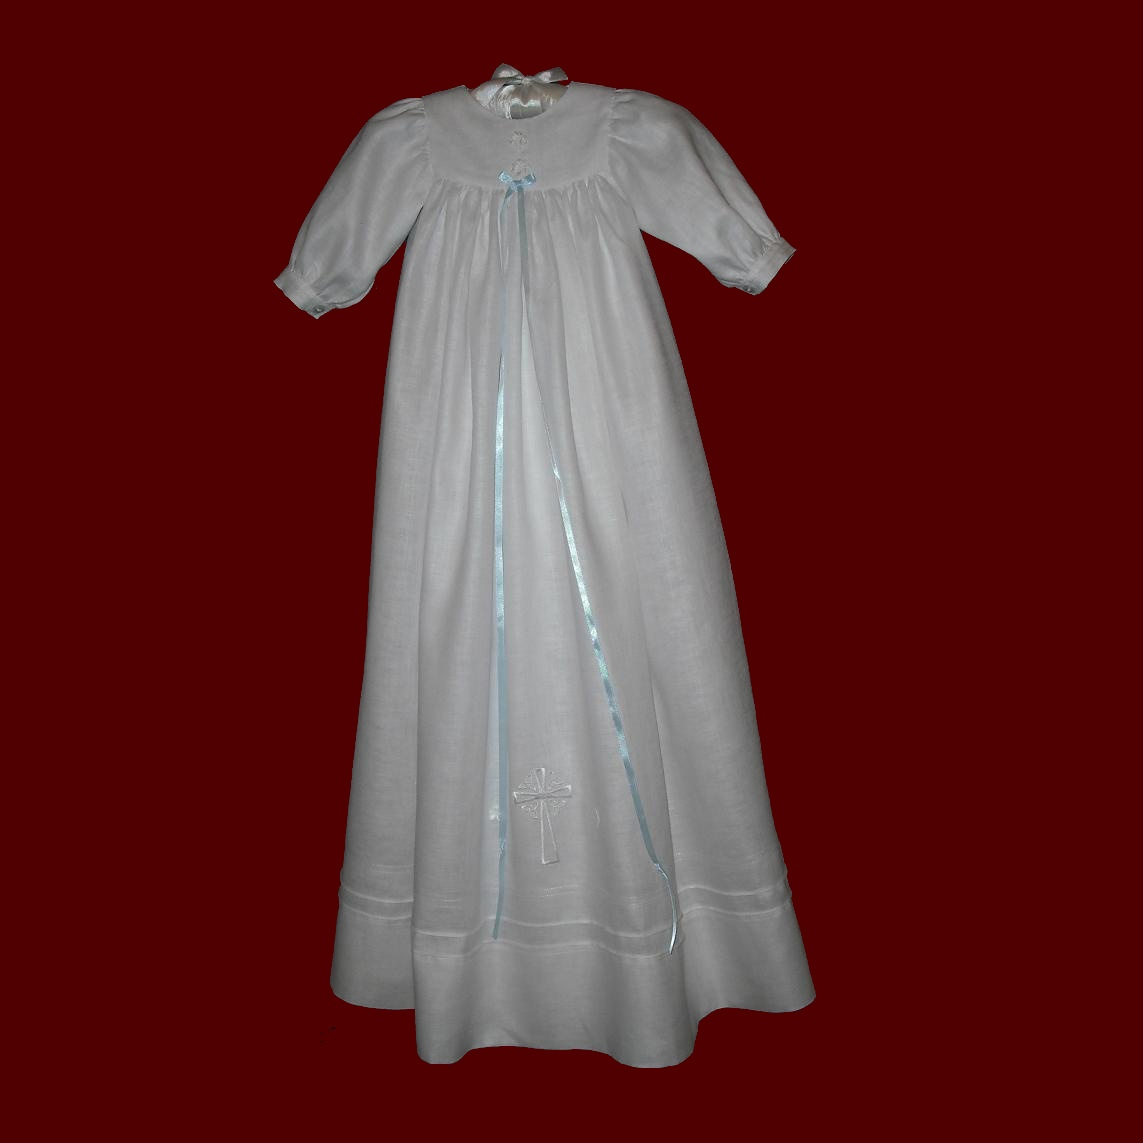 Unisex embroidered cross irish christening gown irish for Making baptism dress from wedding gown